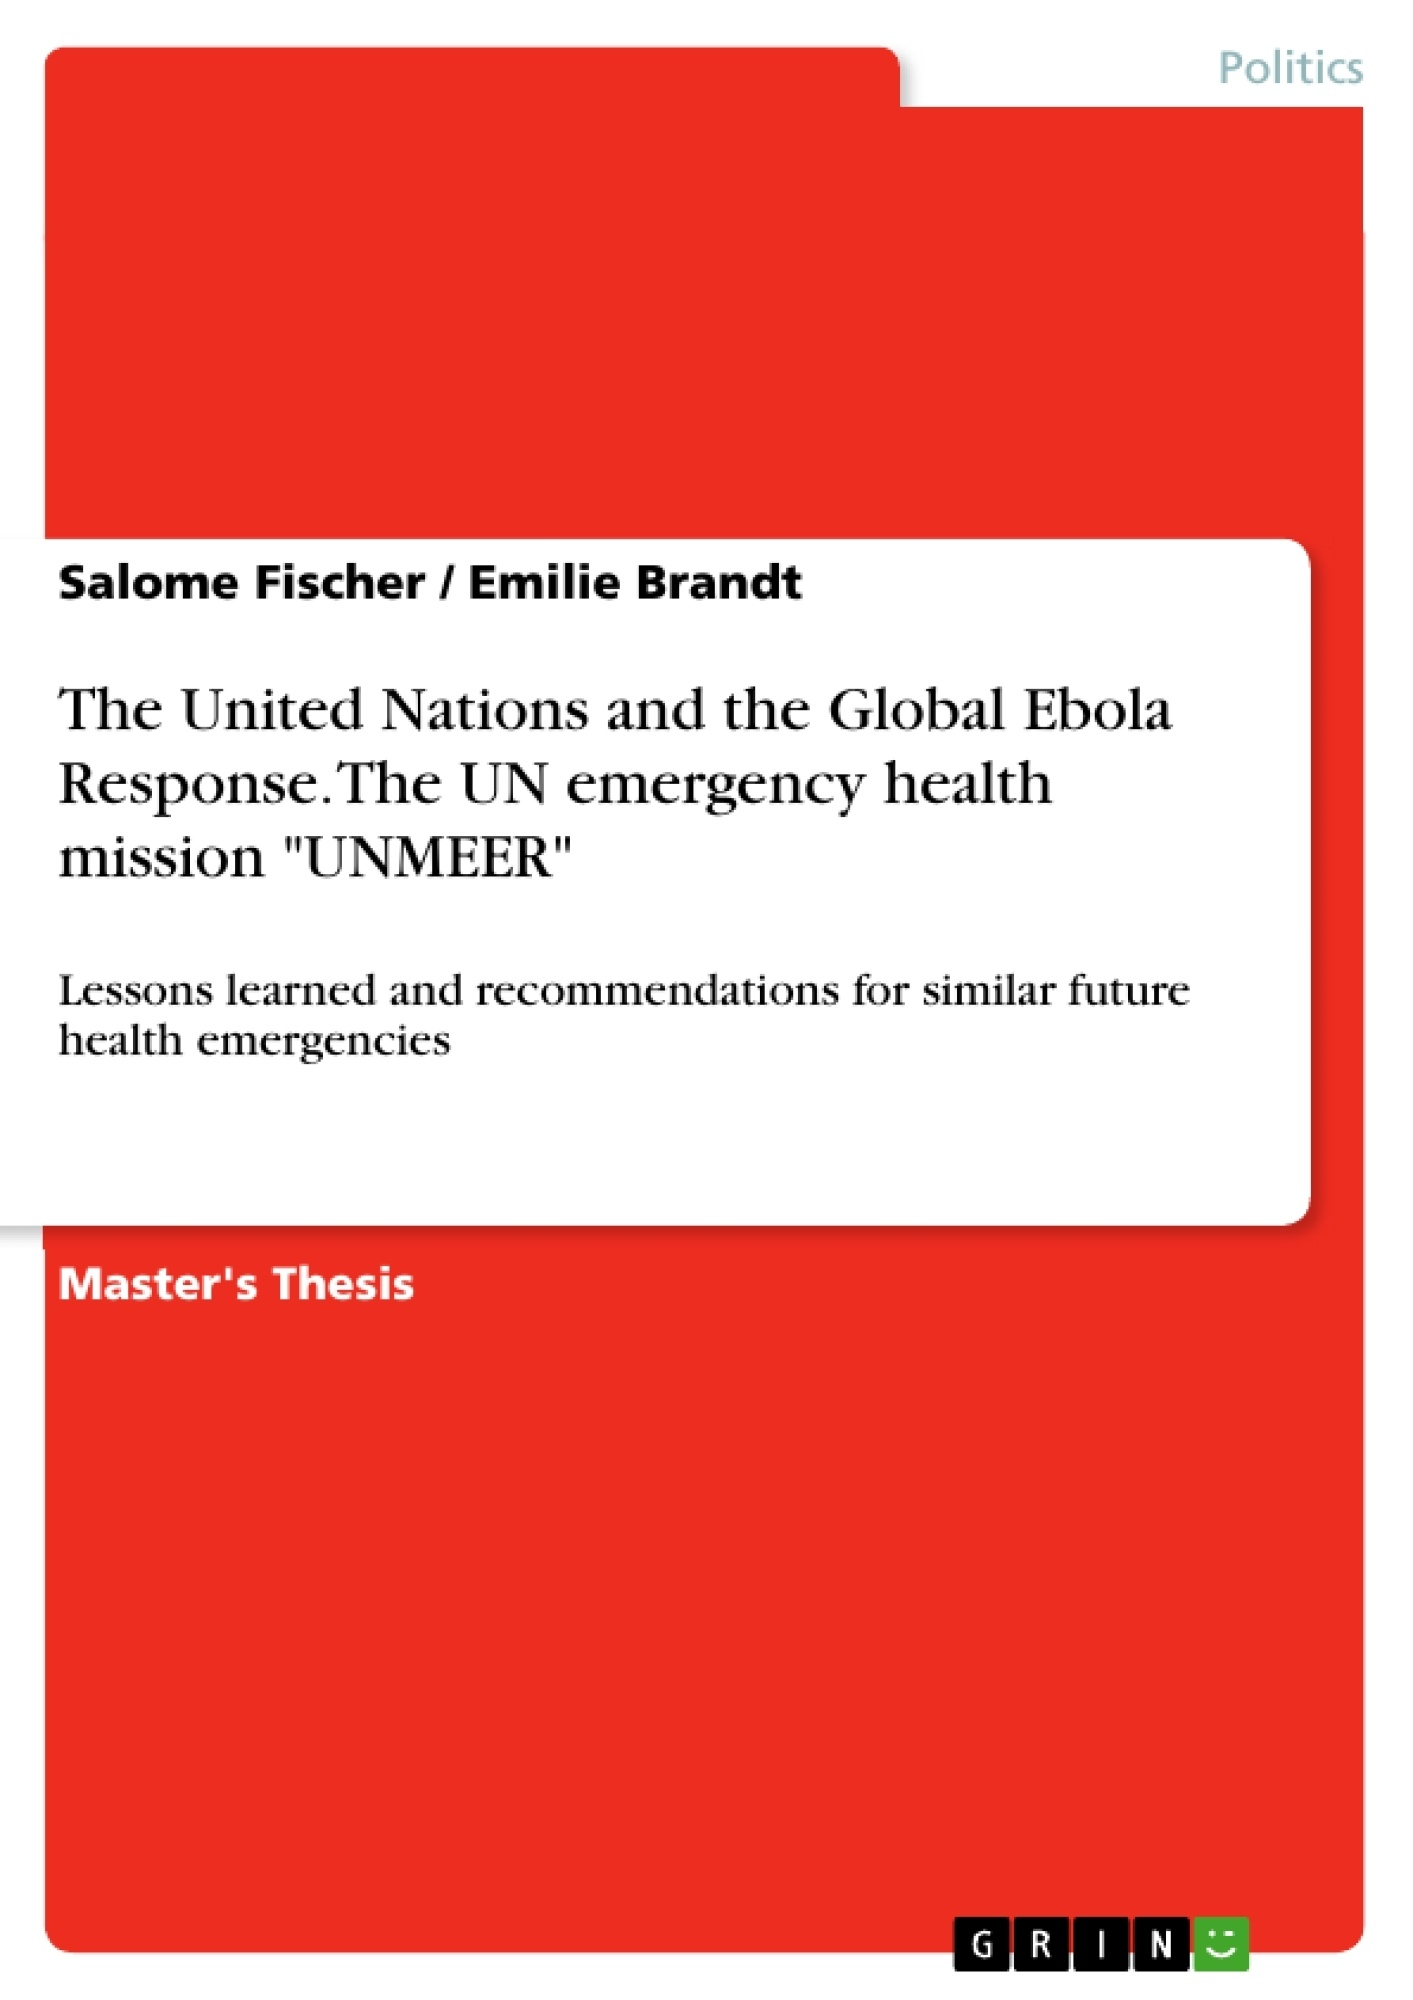 """Title: The United Nations and the Global Ebola Response. The UN emergency health mission """"UNMEER"""""""